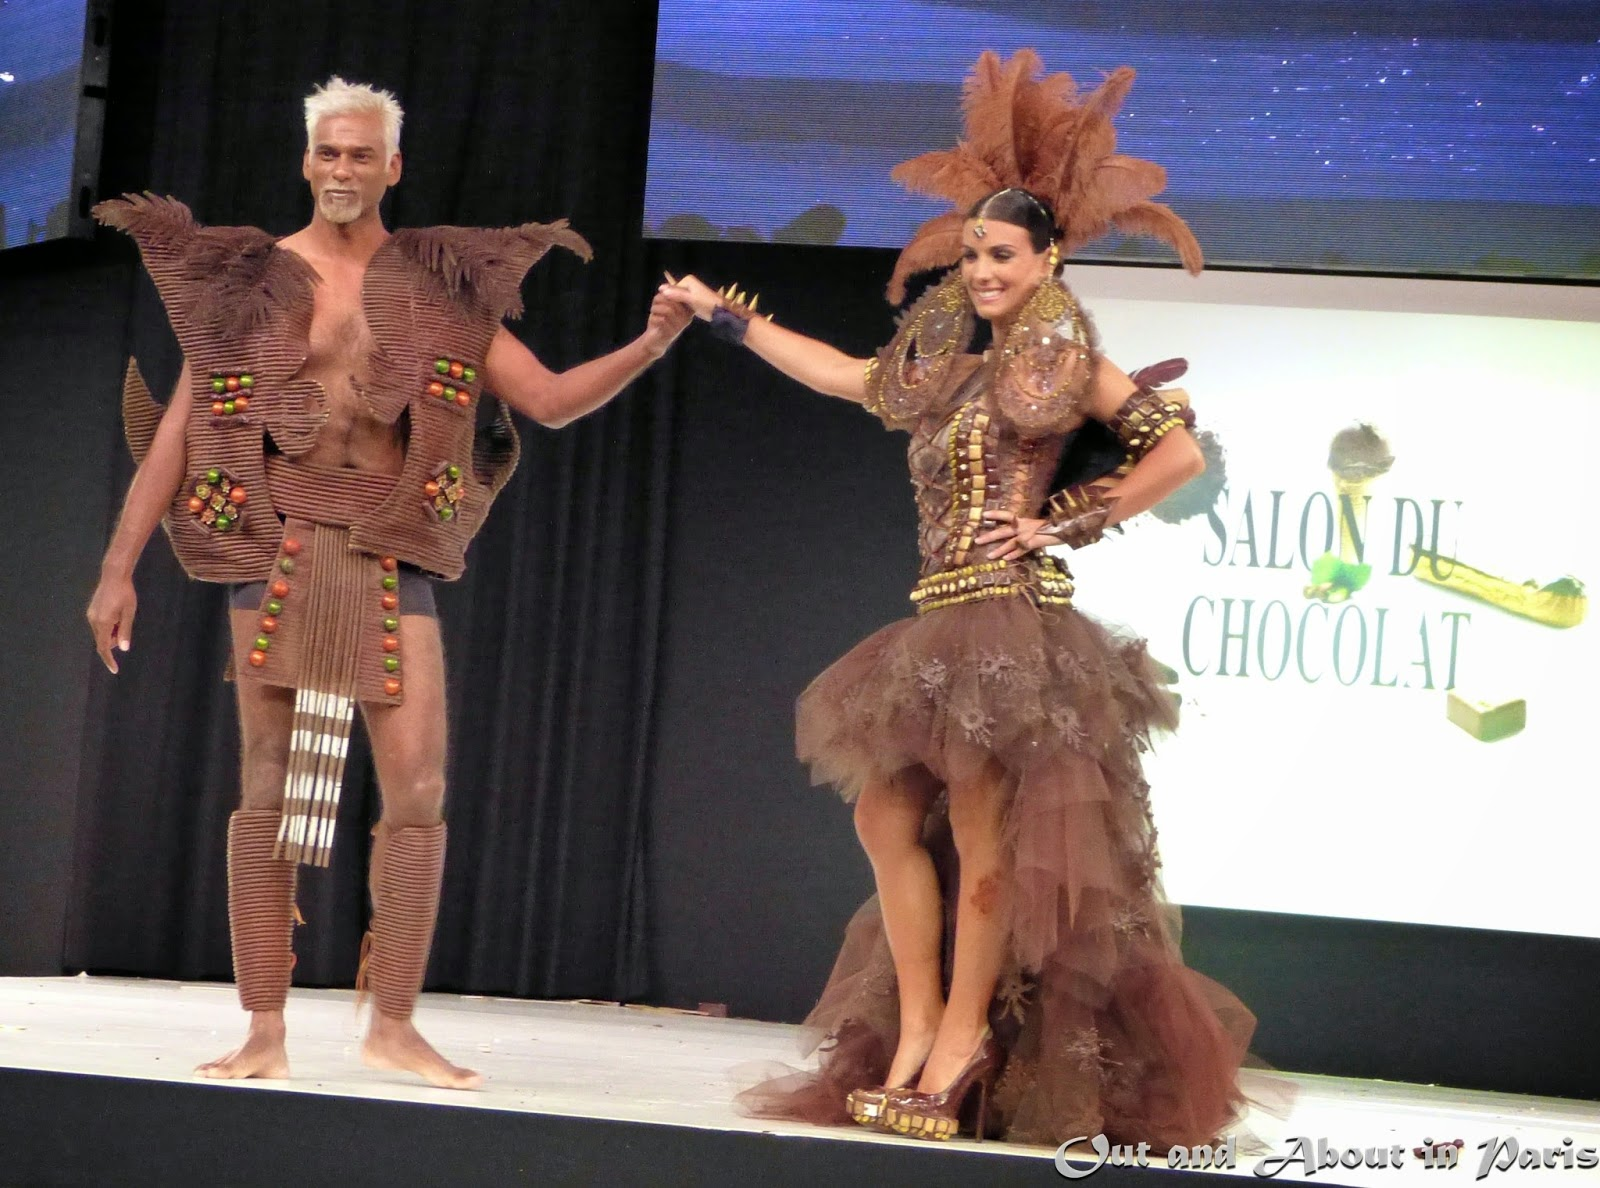 Chocolate Fashion Show at the 20th Annual Salon du Chocolat in Paris!